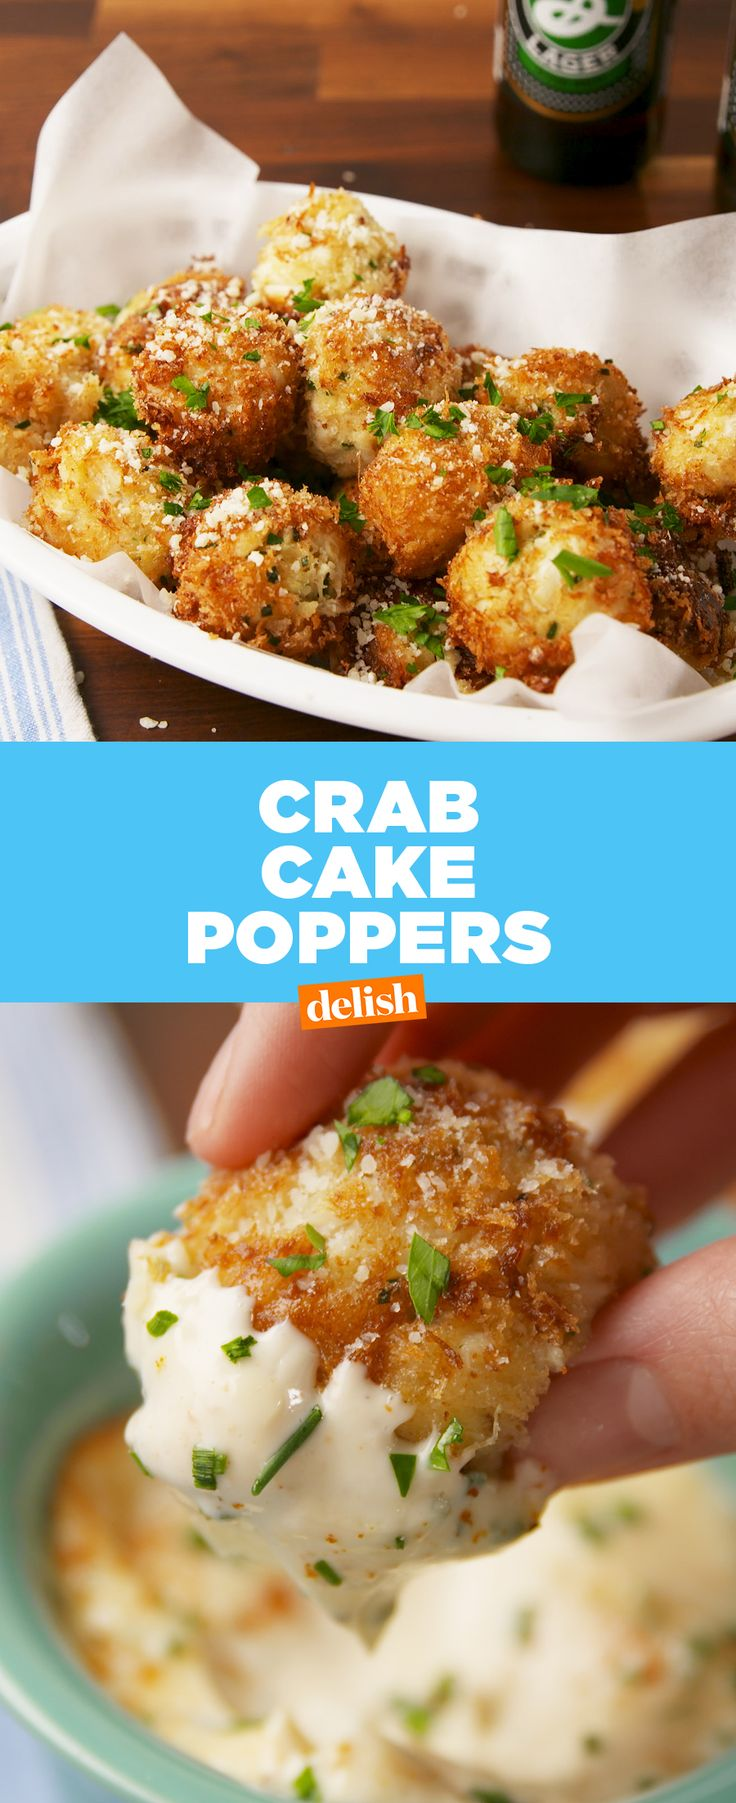 Crab Cake Poppers are THE party app of all party apps. Get the recipe at Delish.com. #crab #crabcake #seafood #recipe #delish #easyrecipe